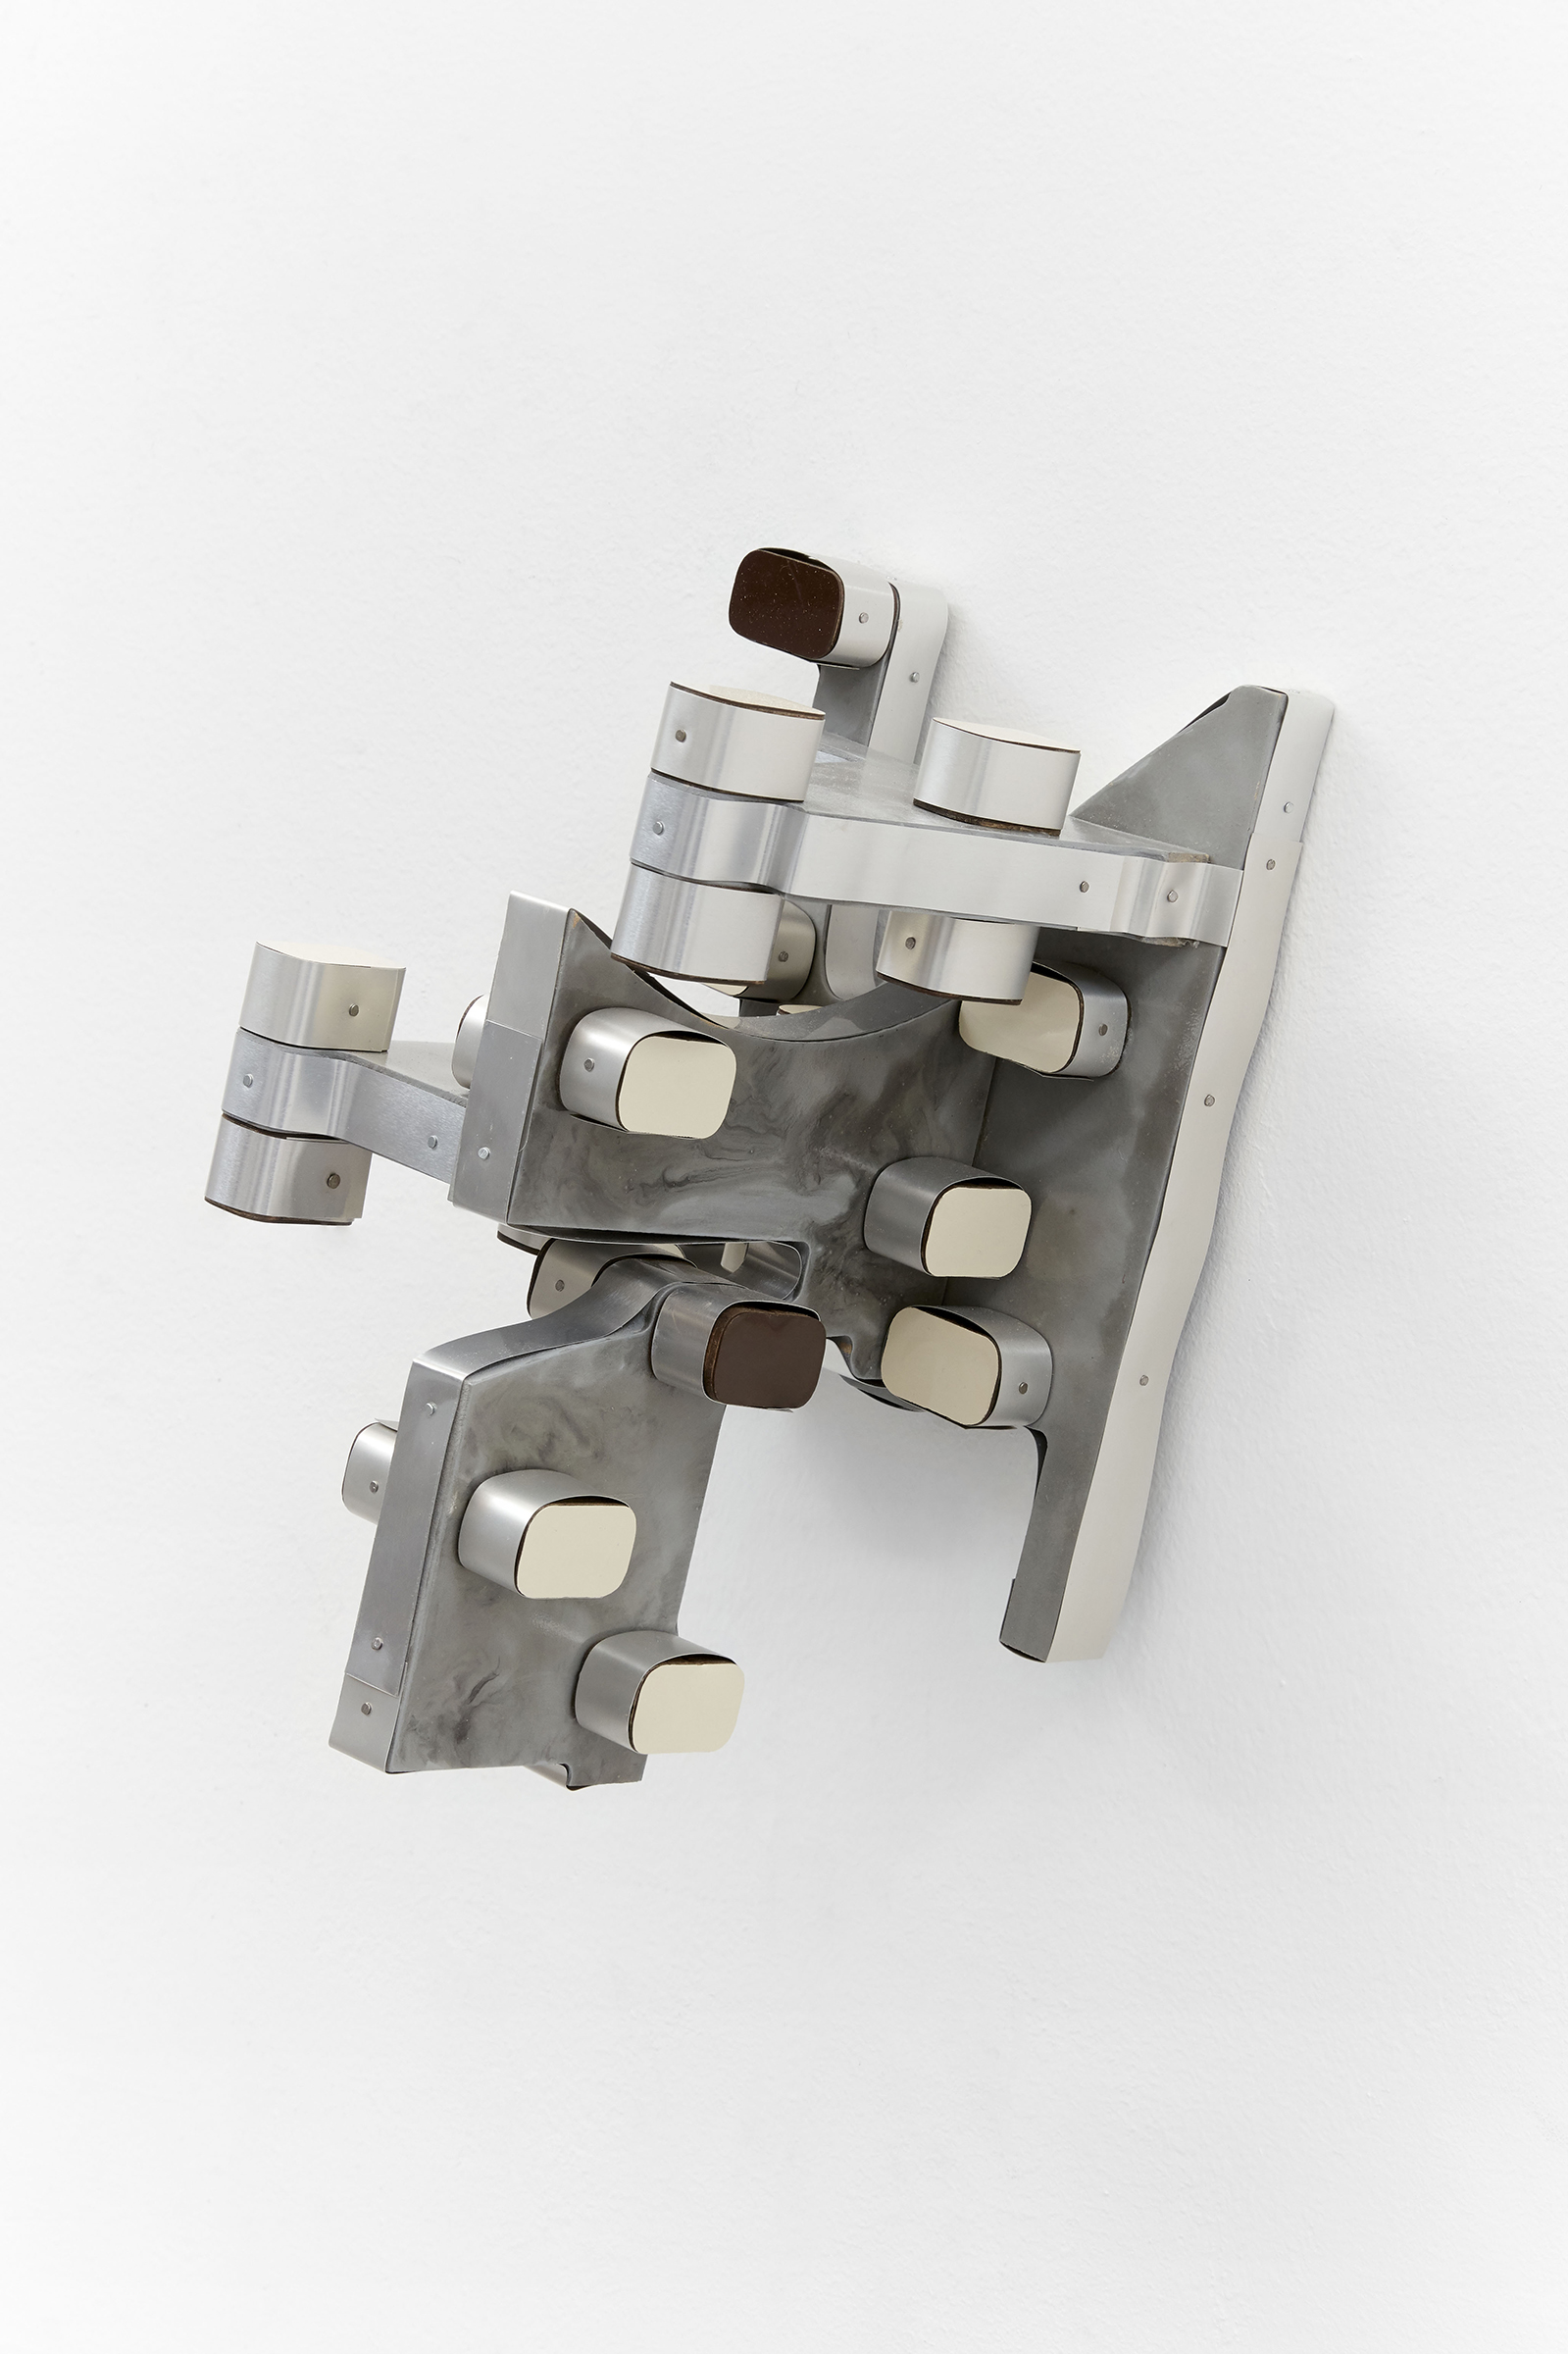 Anne Libby, 1NR, 2020, Aluminum Venetian blinds, Formica, plywood, pigmented Urethane, 10h x 9w x 8d in.